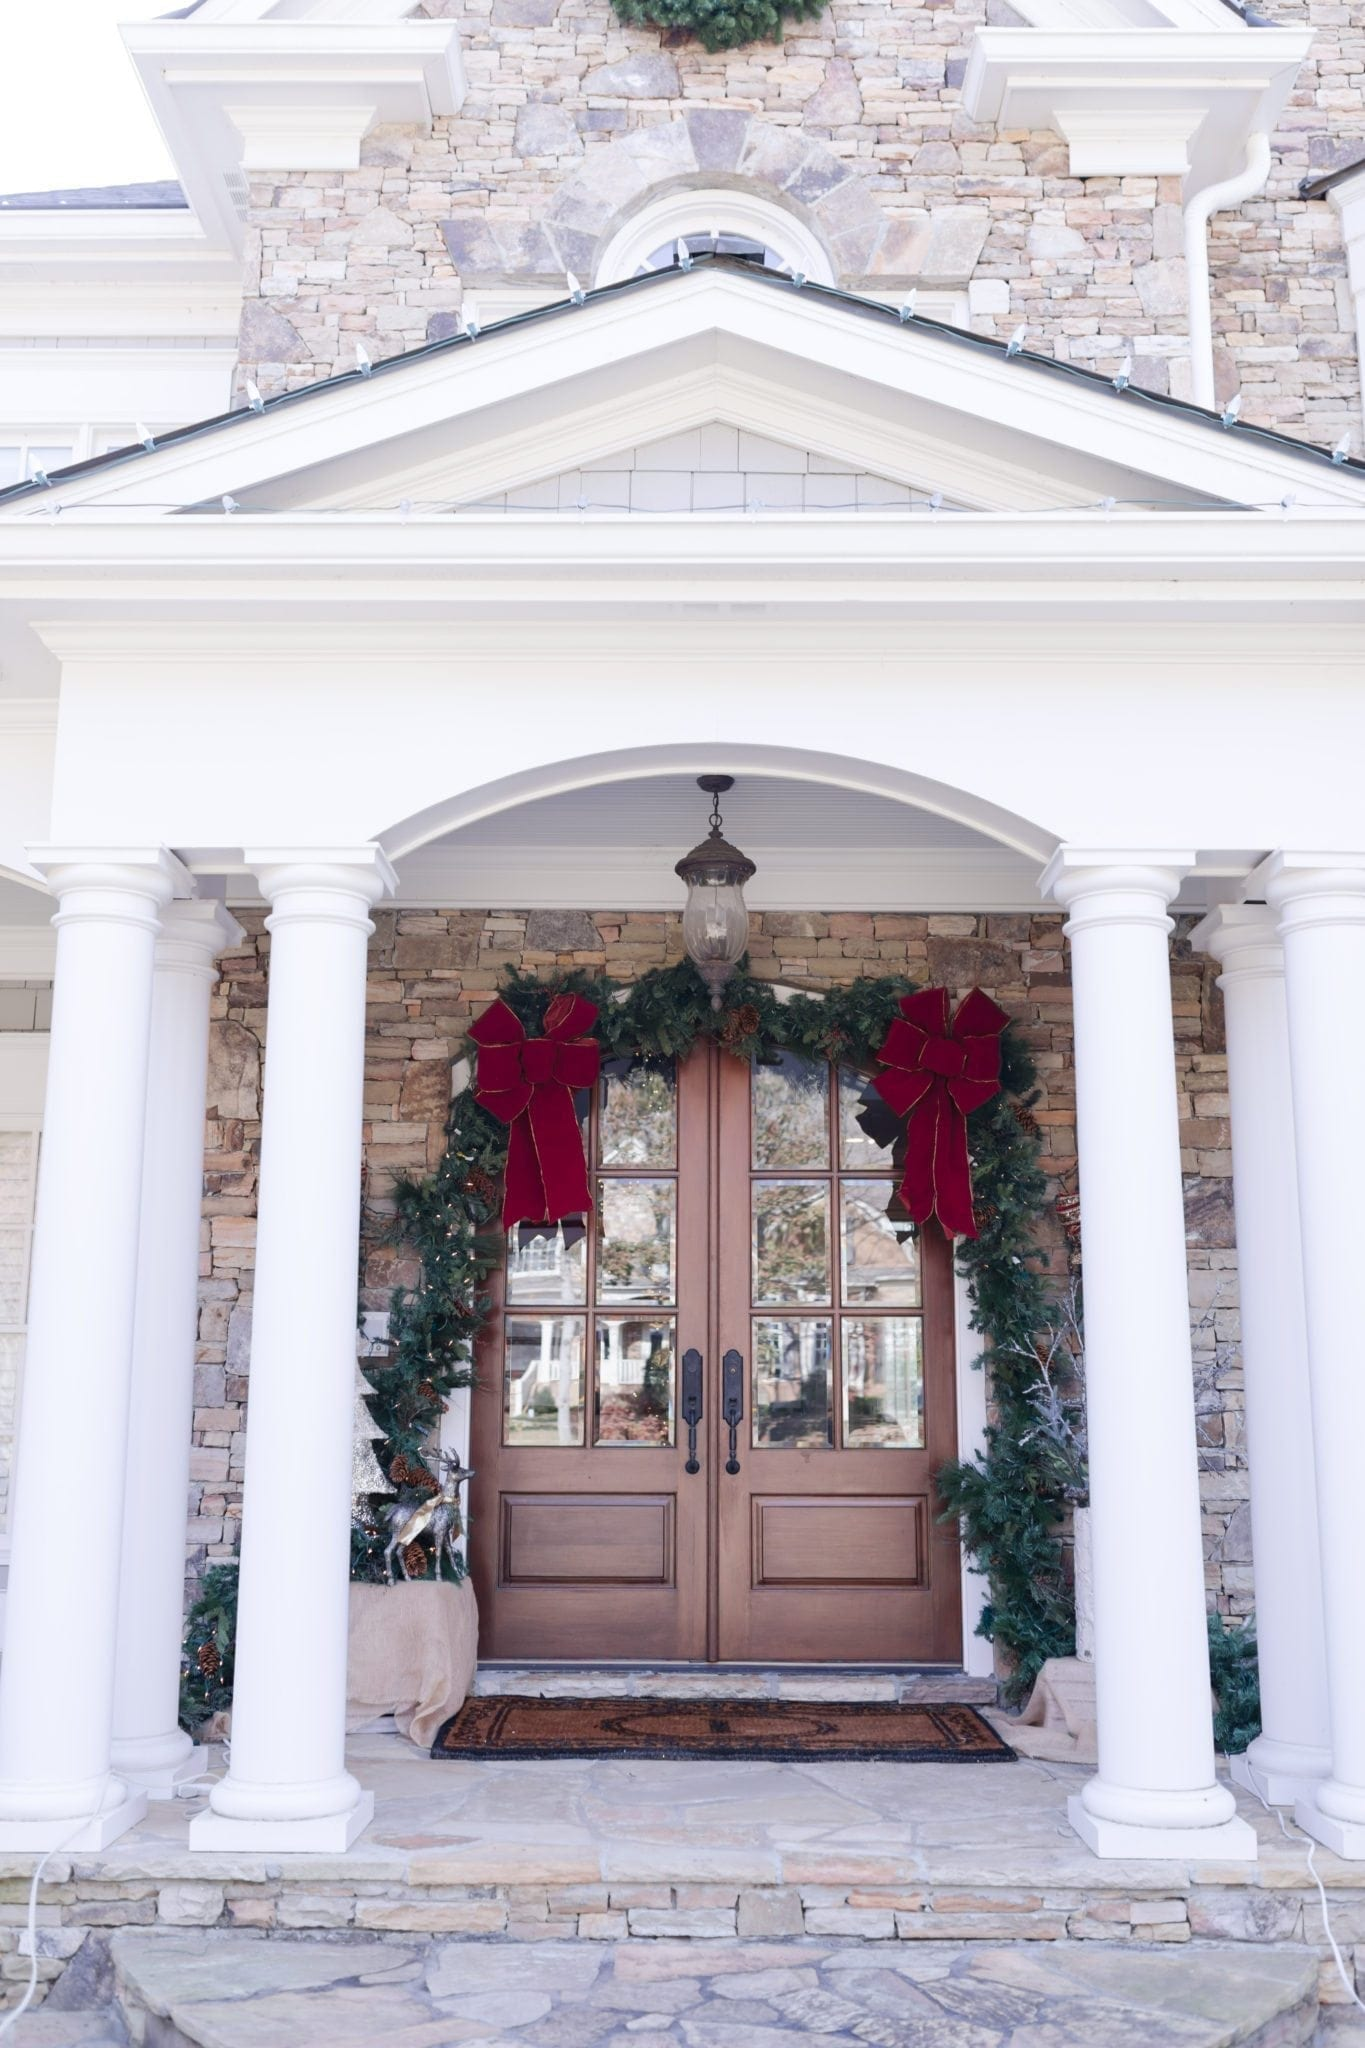 Christmas Decorations for the front door. Garland hung around door frame.